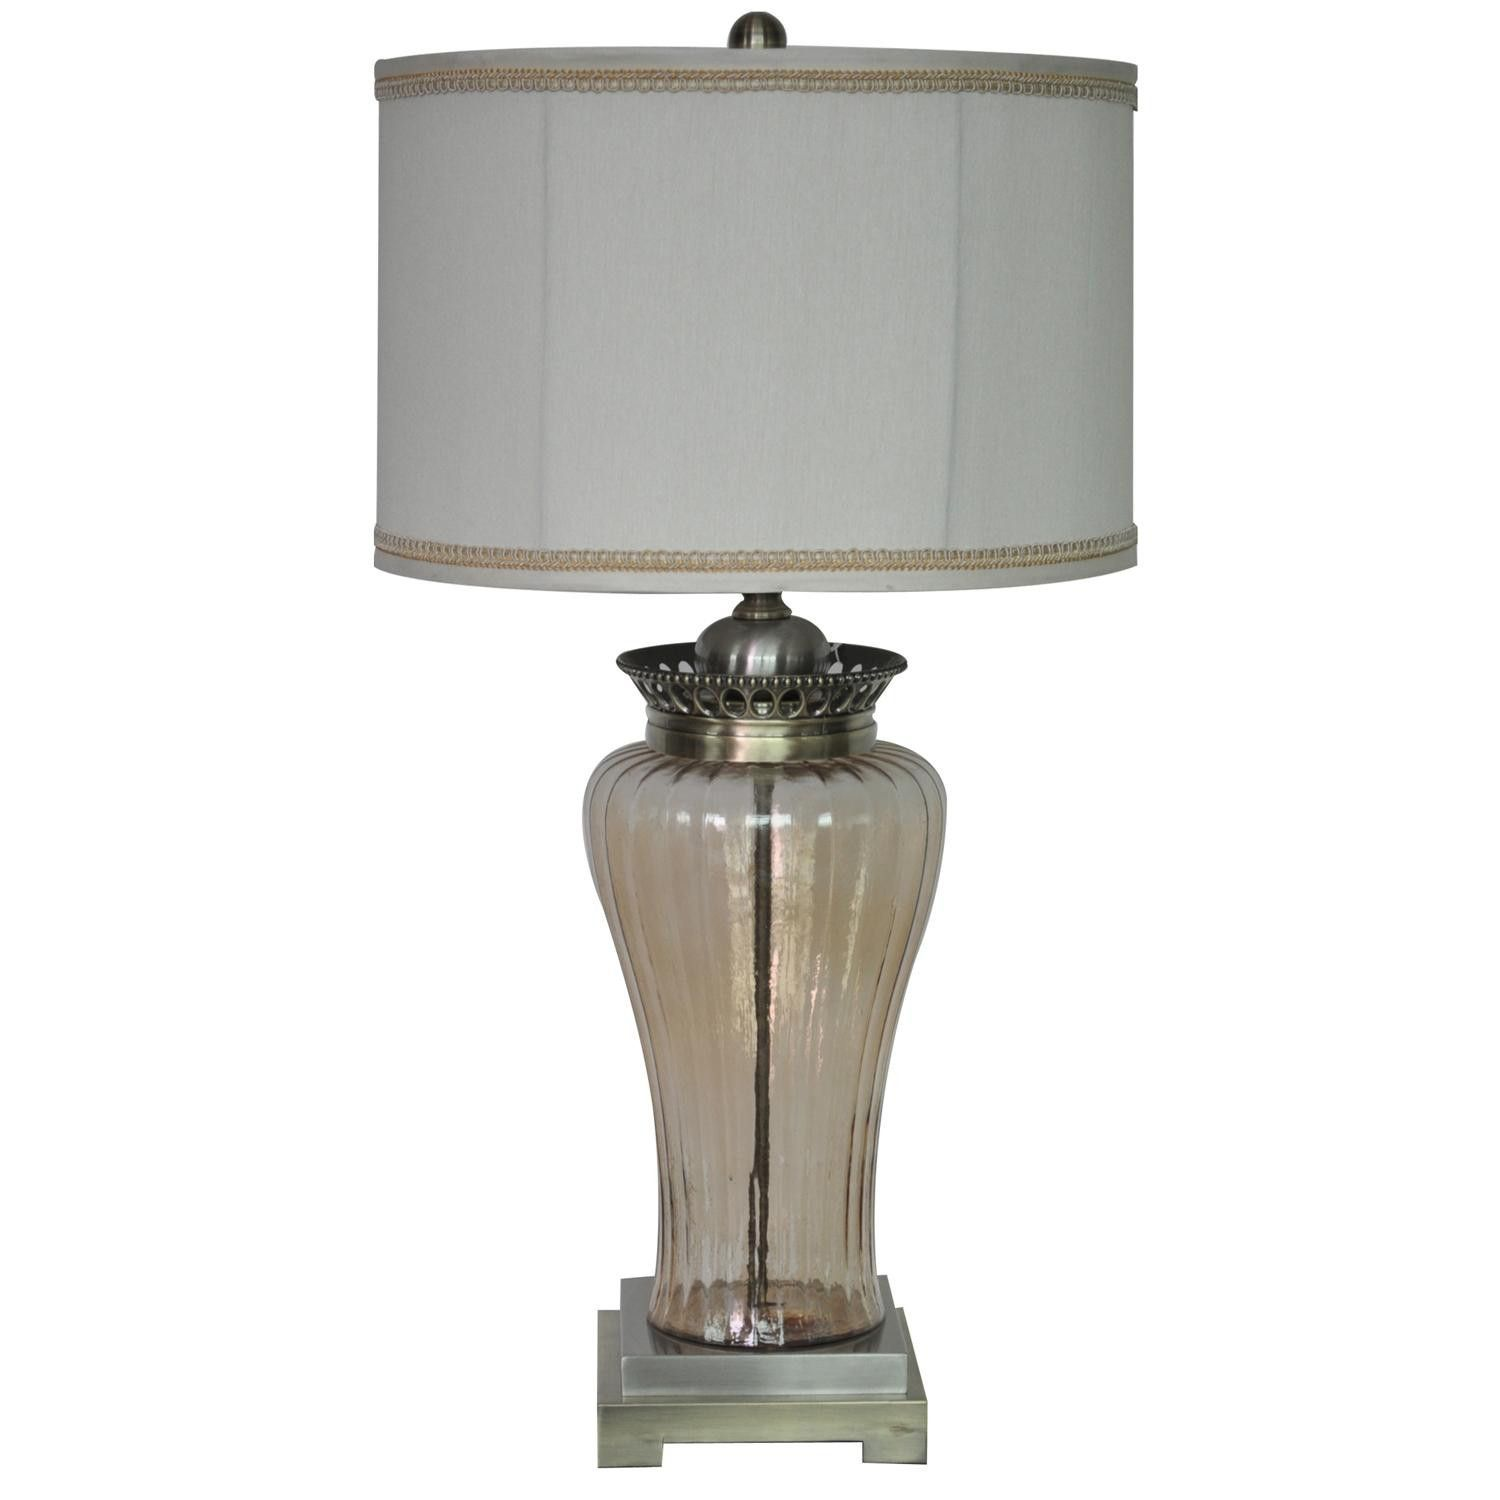 Crestview Celine Table Lamp Cvabs688 Table Lamp